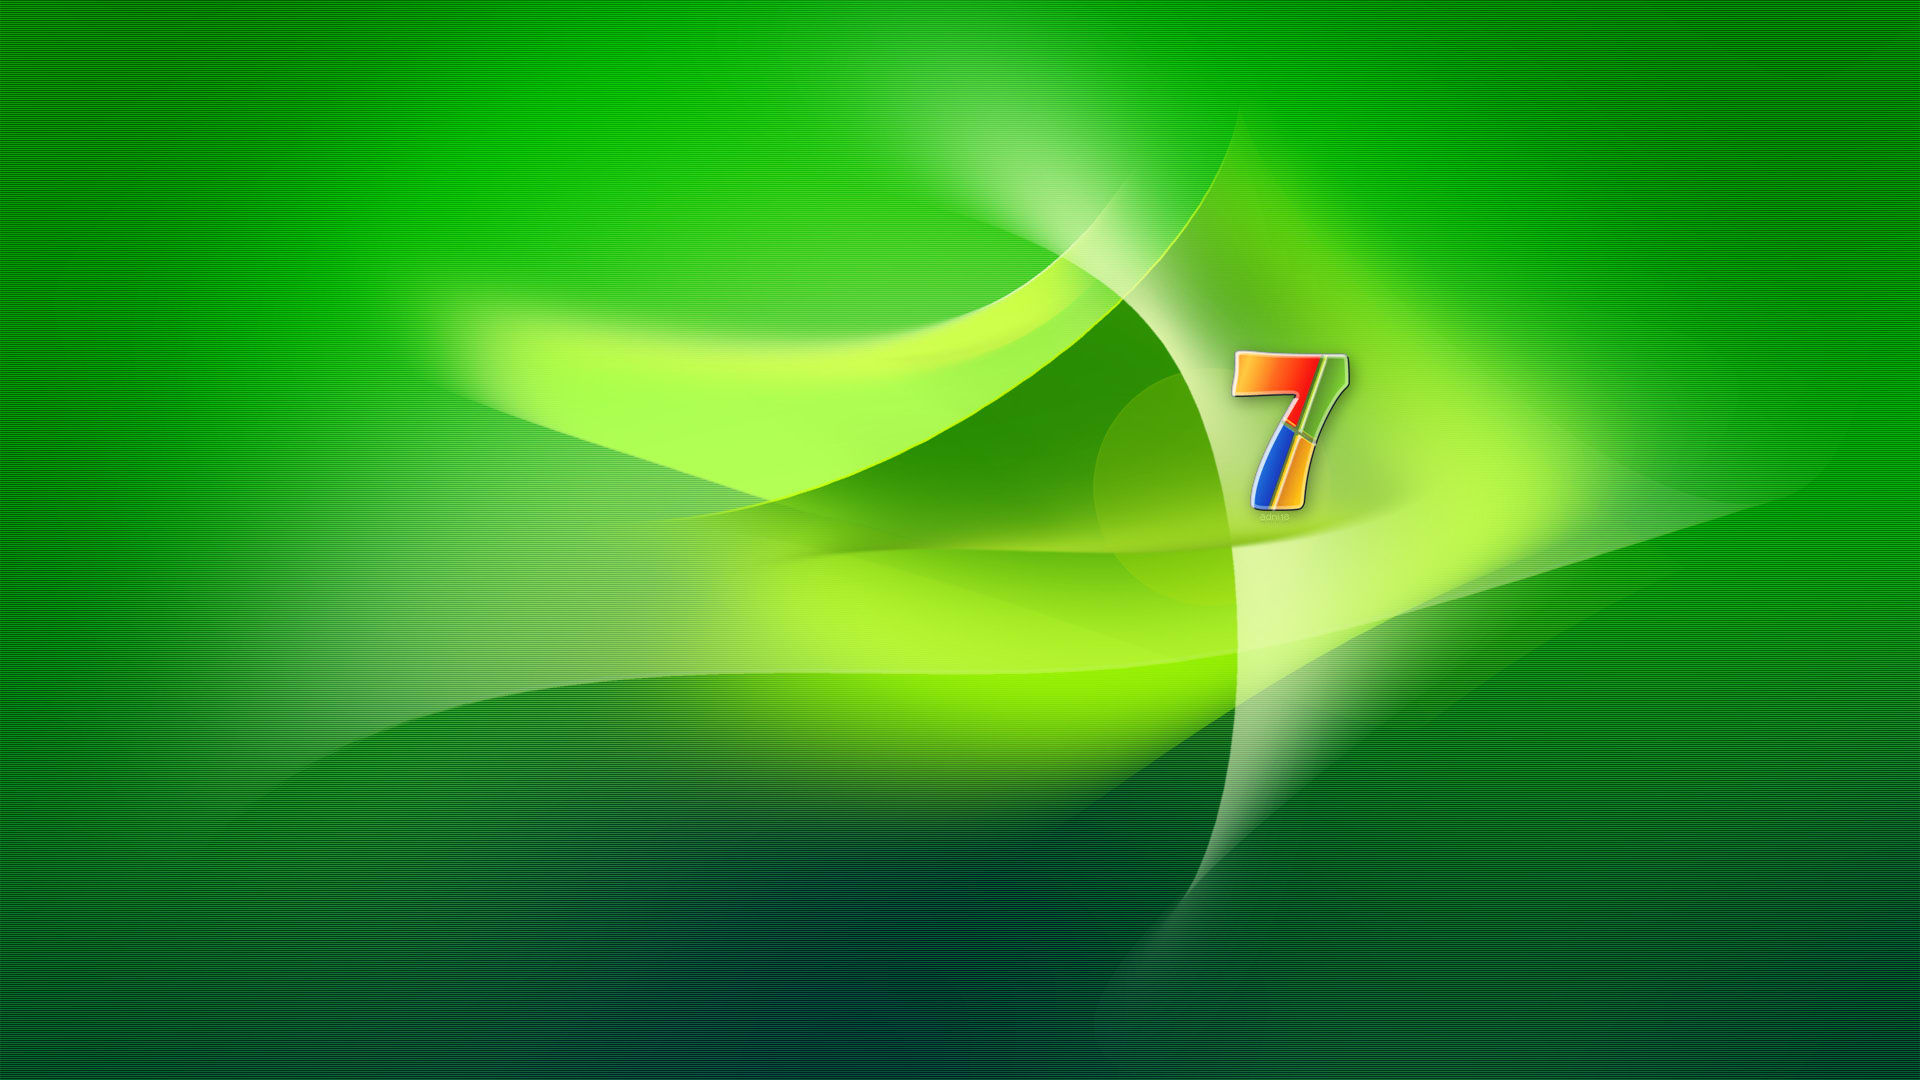 Windows 7 Green